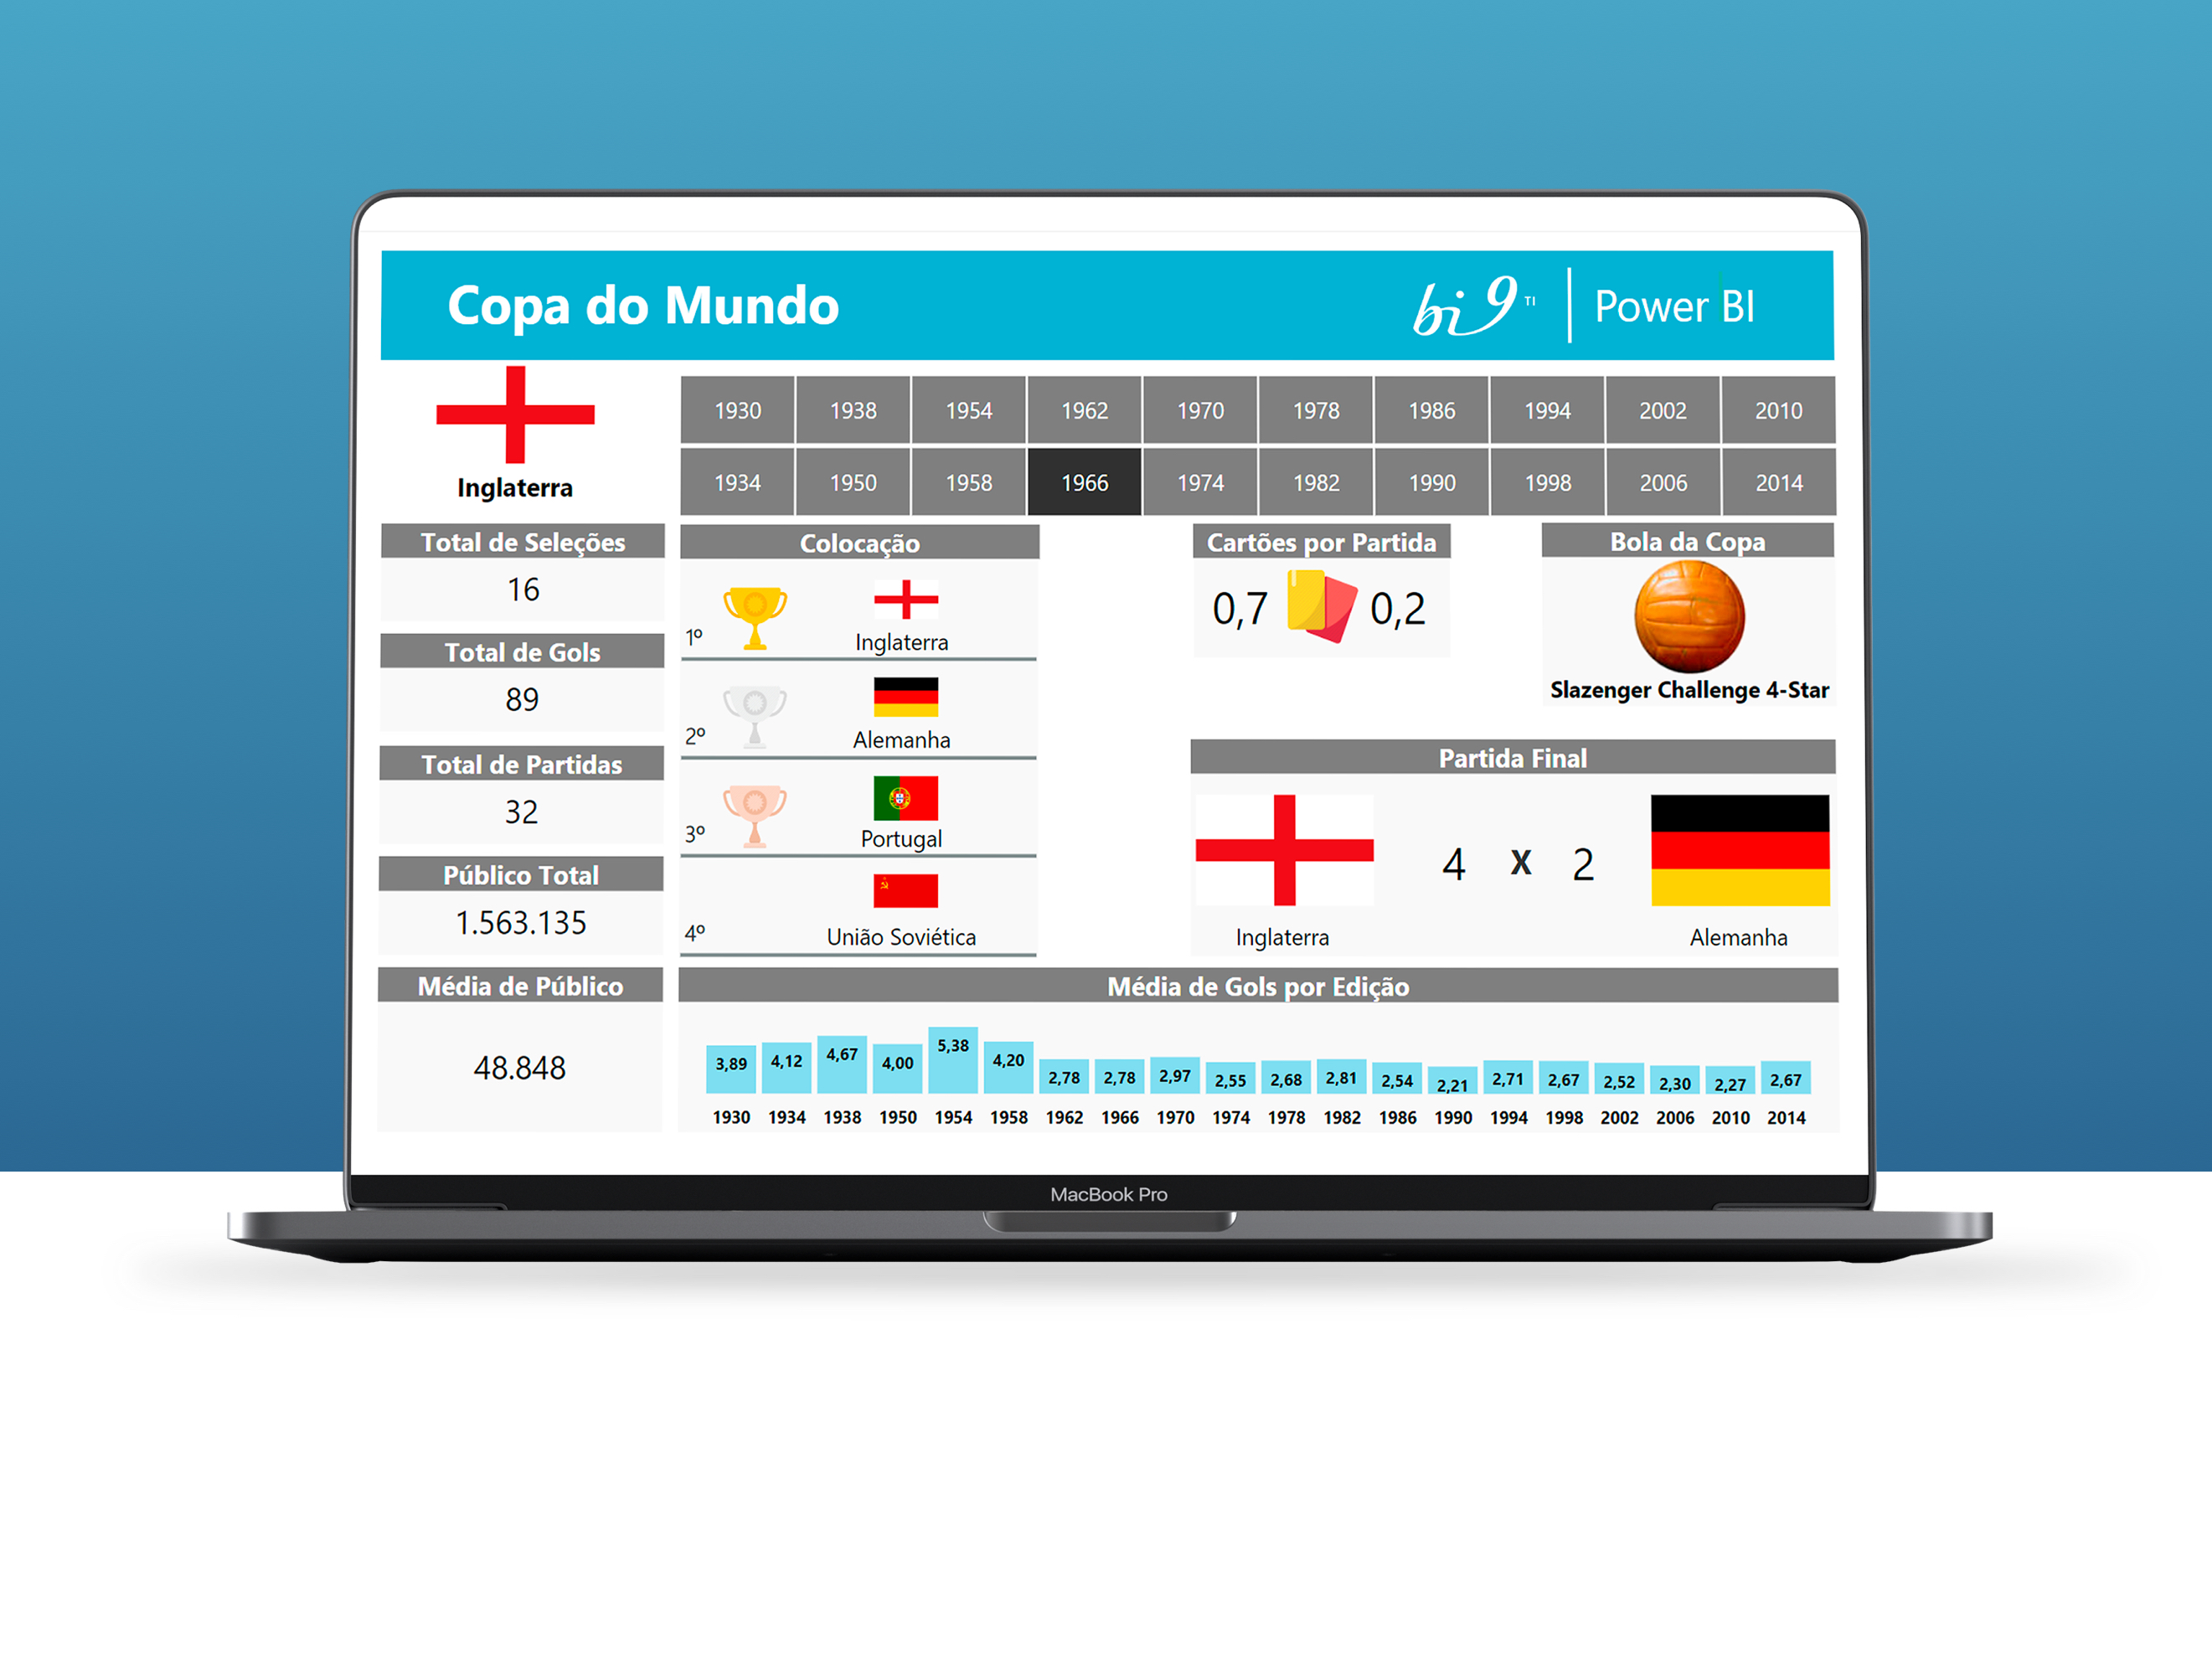 [DASHBOARD] Copa do Mundo